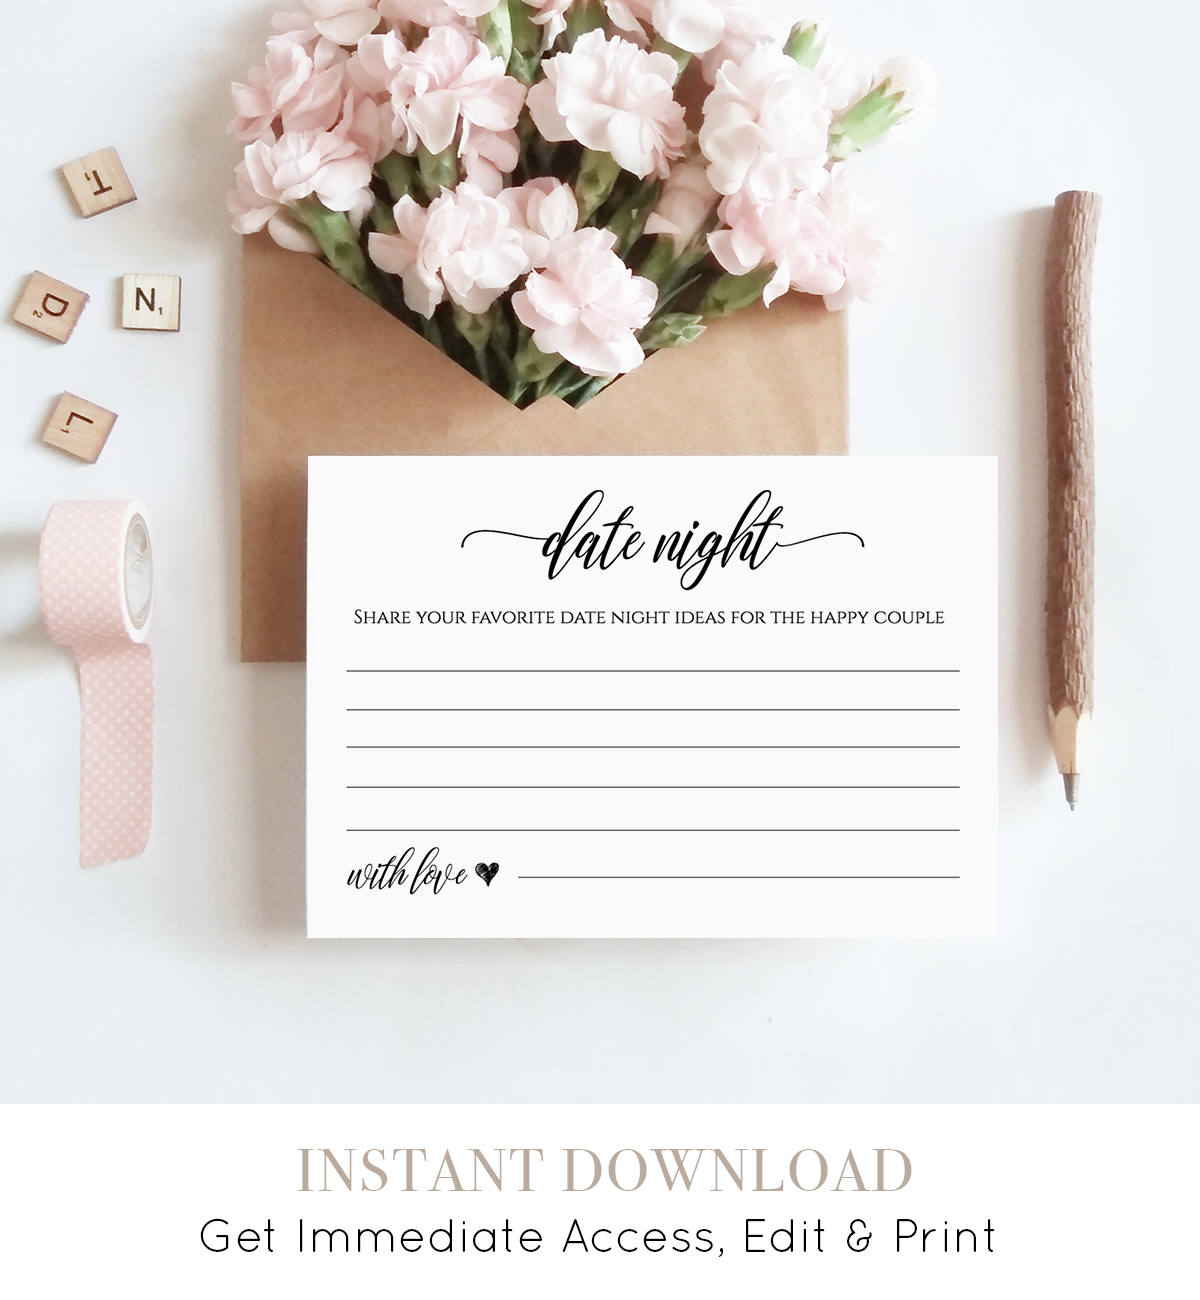 printable date night idea card diy wedding advice template bridal shower game fully editable instant download digital 023 108ec 020